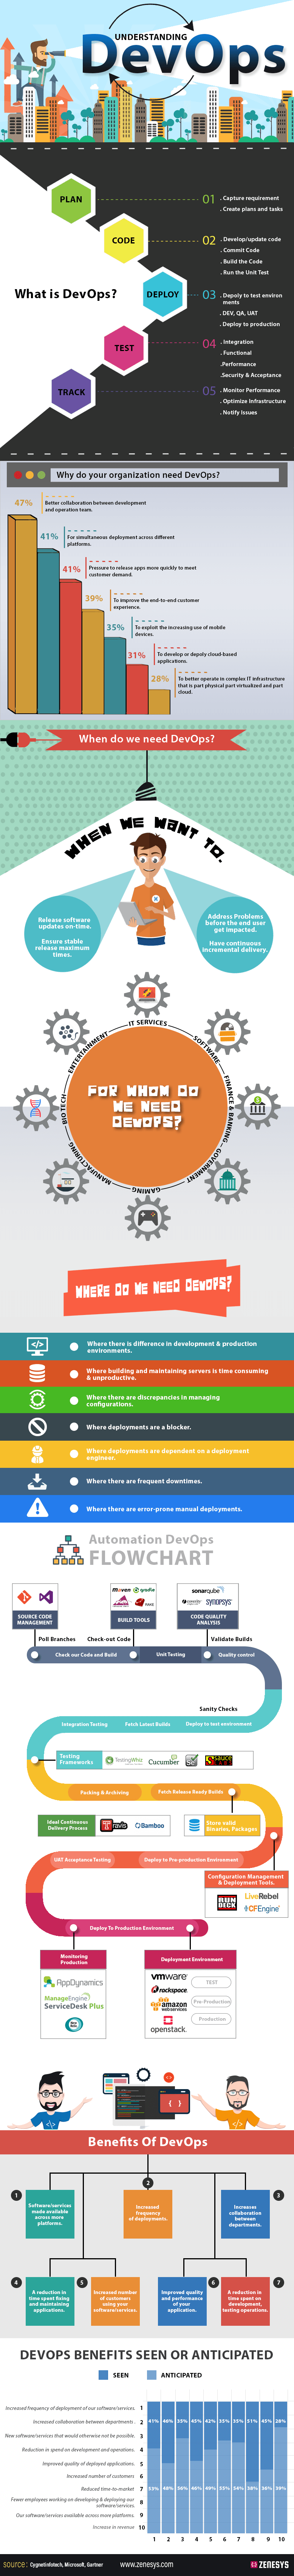 Why do you need a DevOps Strategy? - Infographic